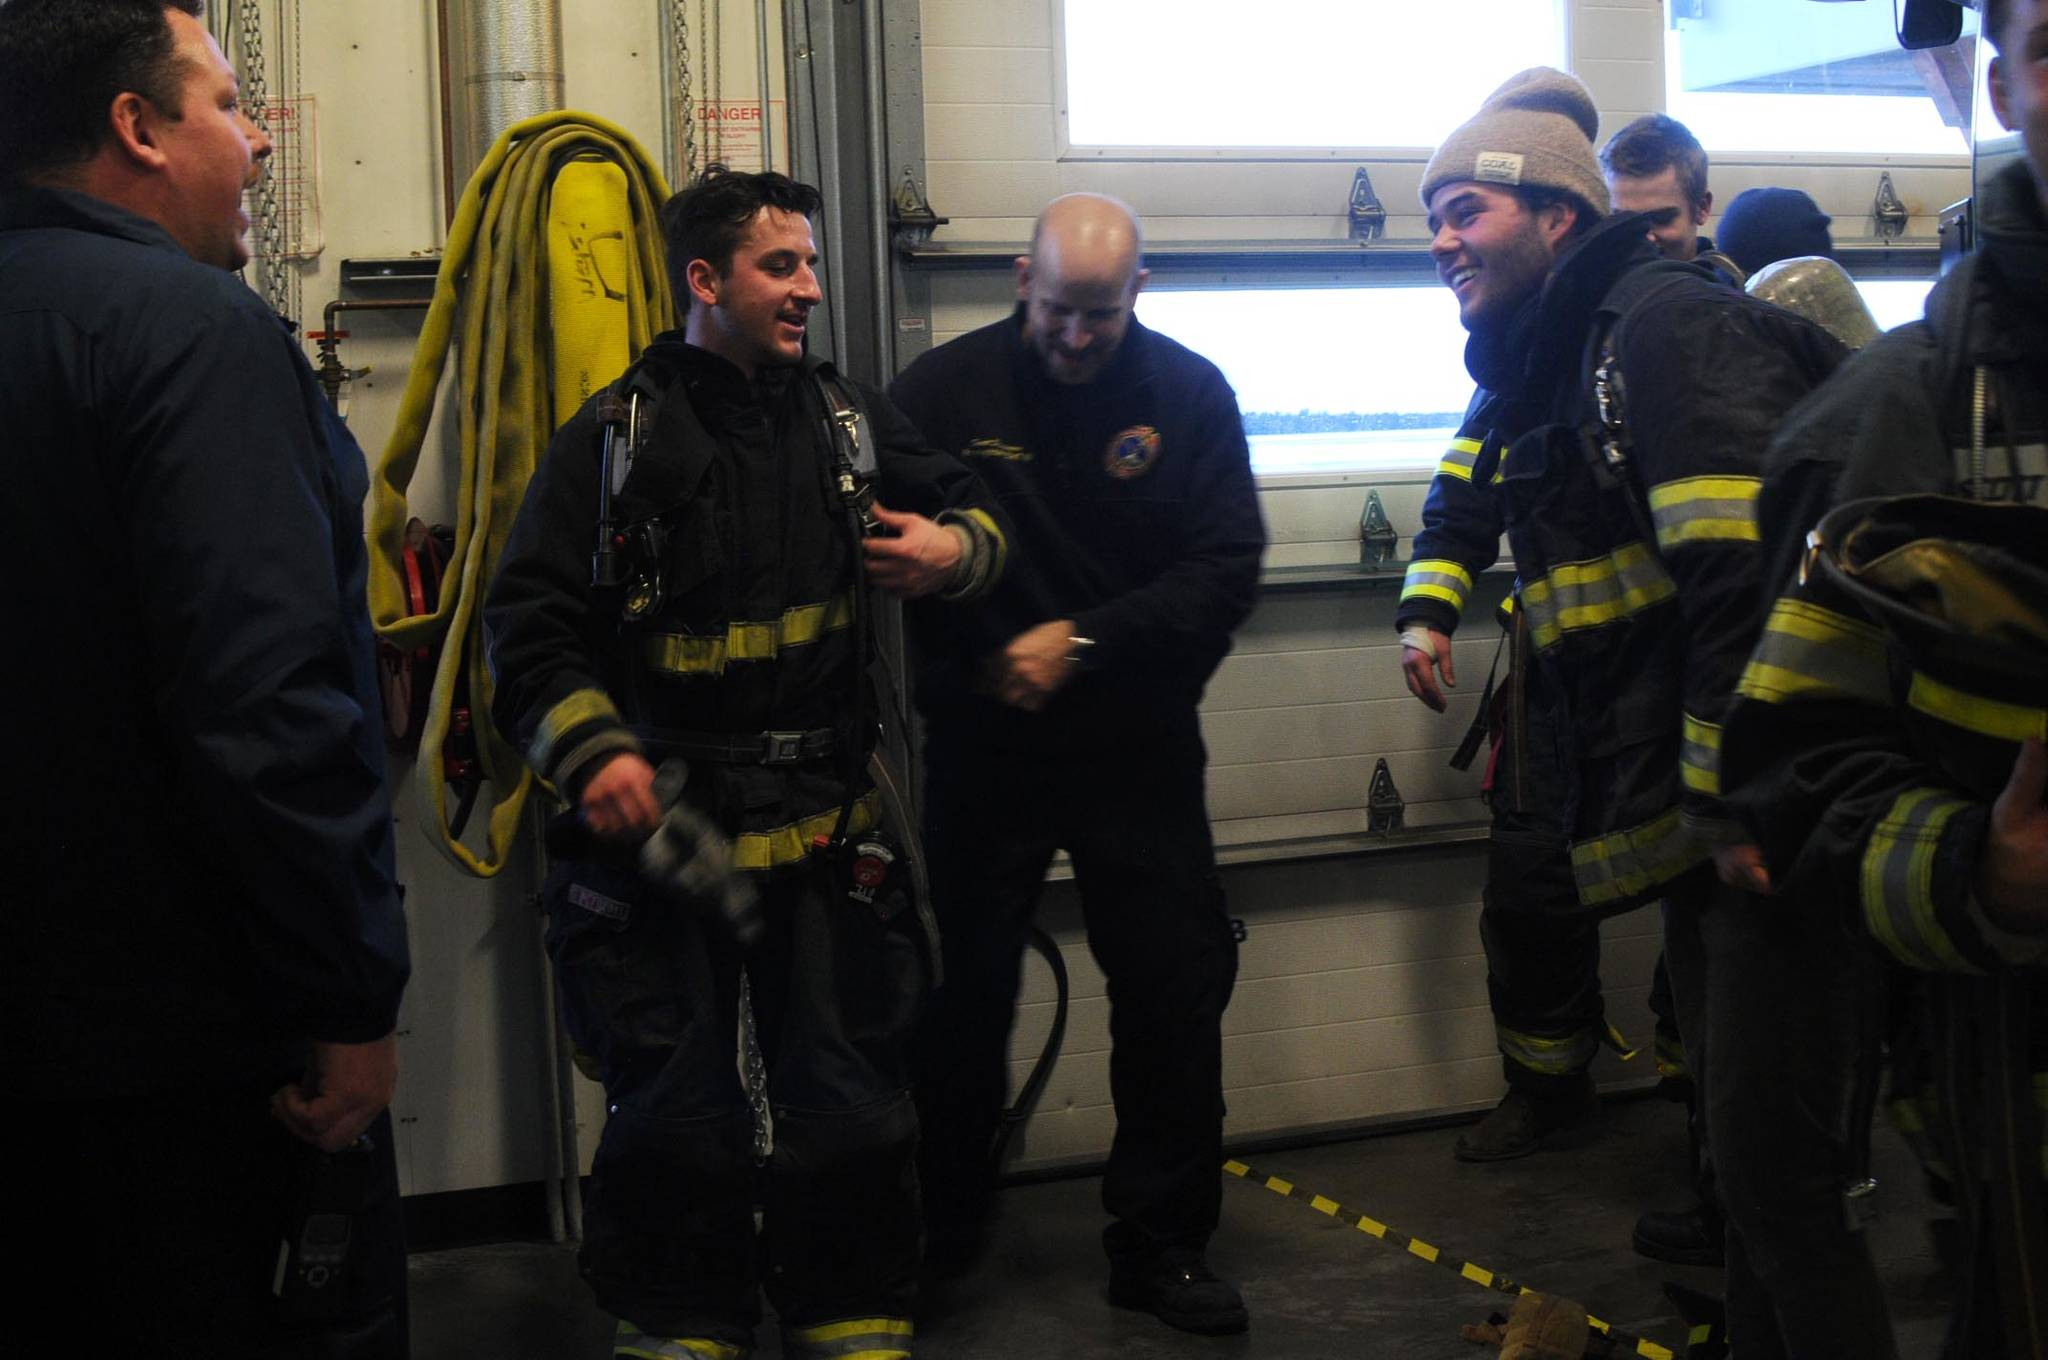 Kenai Fire Marshal Tommy Carver talks to the Kenai River Brown Bears hockey team players during a tour and training demonstratoin at the Kenai Emergency Operations Center on the Kenai Municipal Airport on Tuesday, Nov. 28, 2017 in Kenai, Alaska. Kenai Fire Department firefighters walked the Brown Bears players through some of the training and tools firefighters use to give them an idea of what a career in fire response is like. (Photo by Elizabeth Earl/Peninsula Clarion)